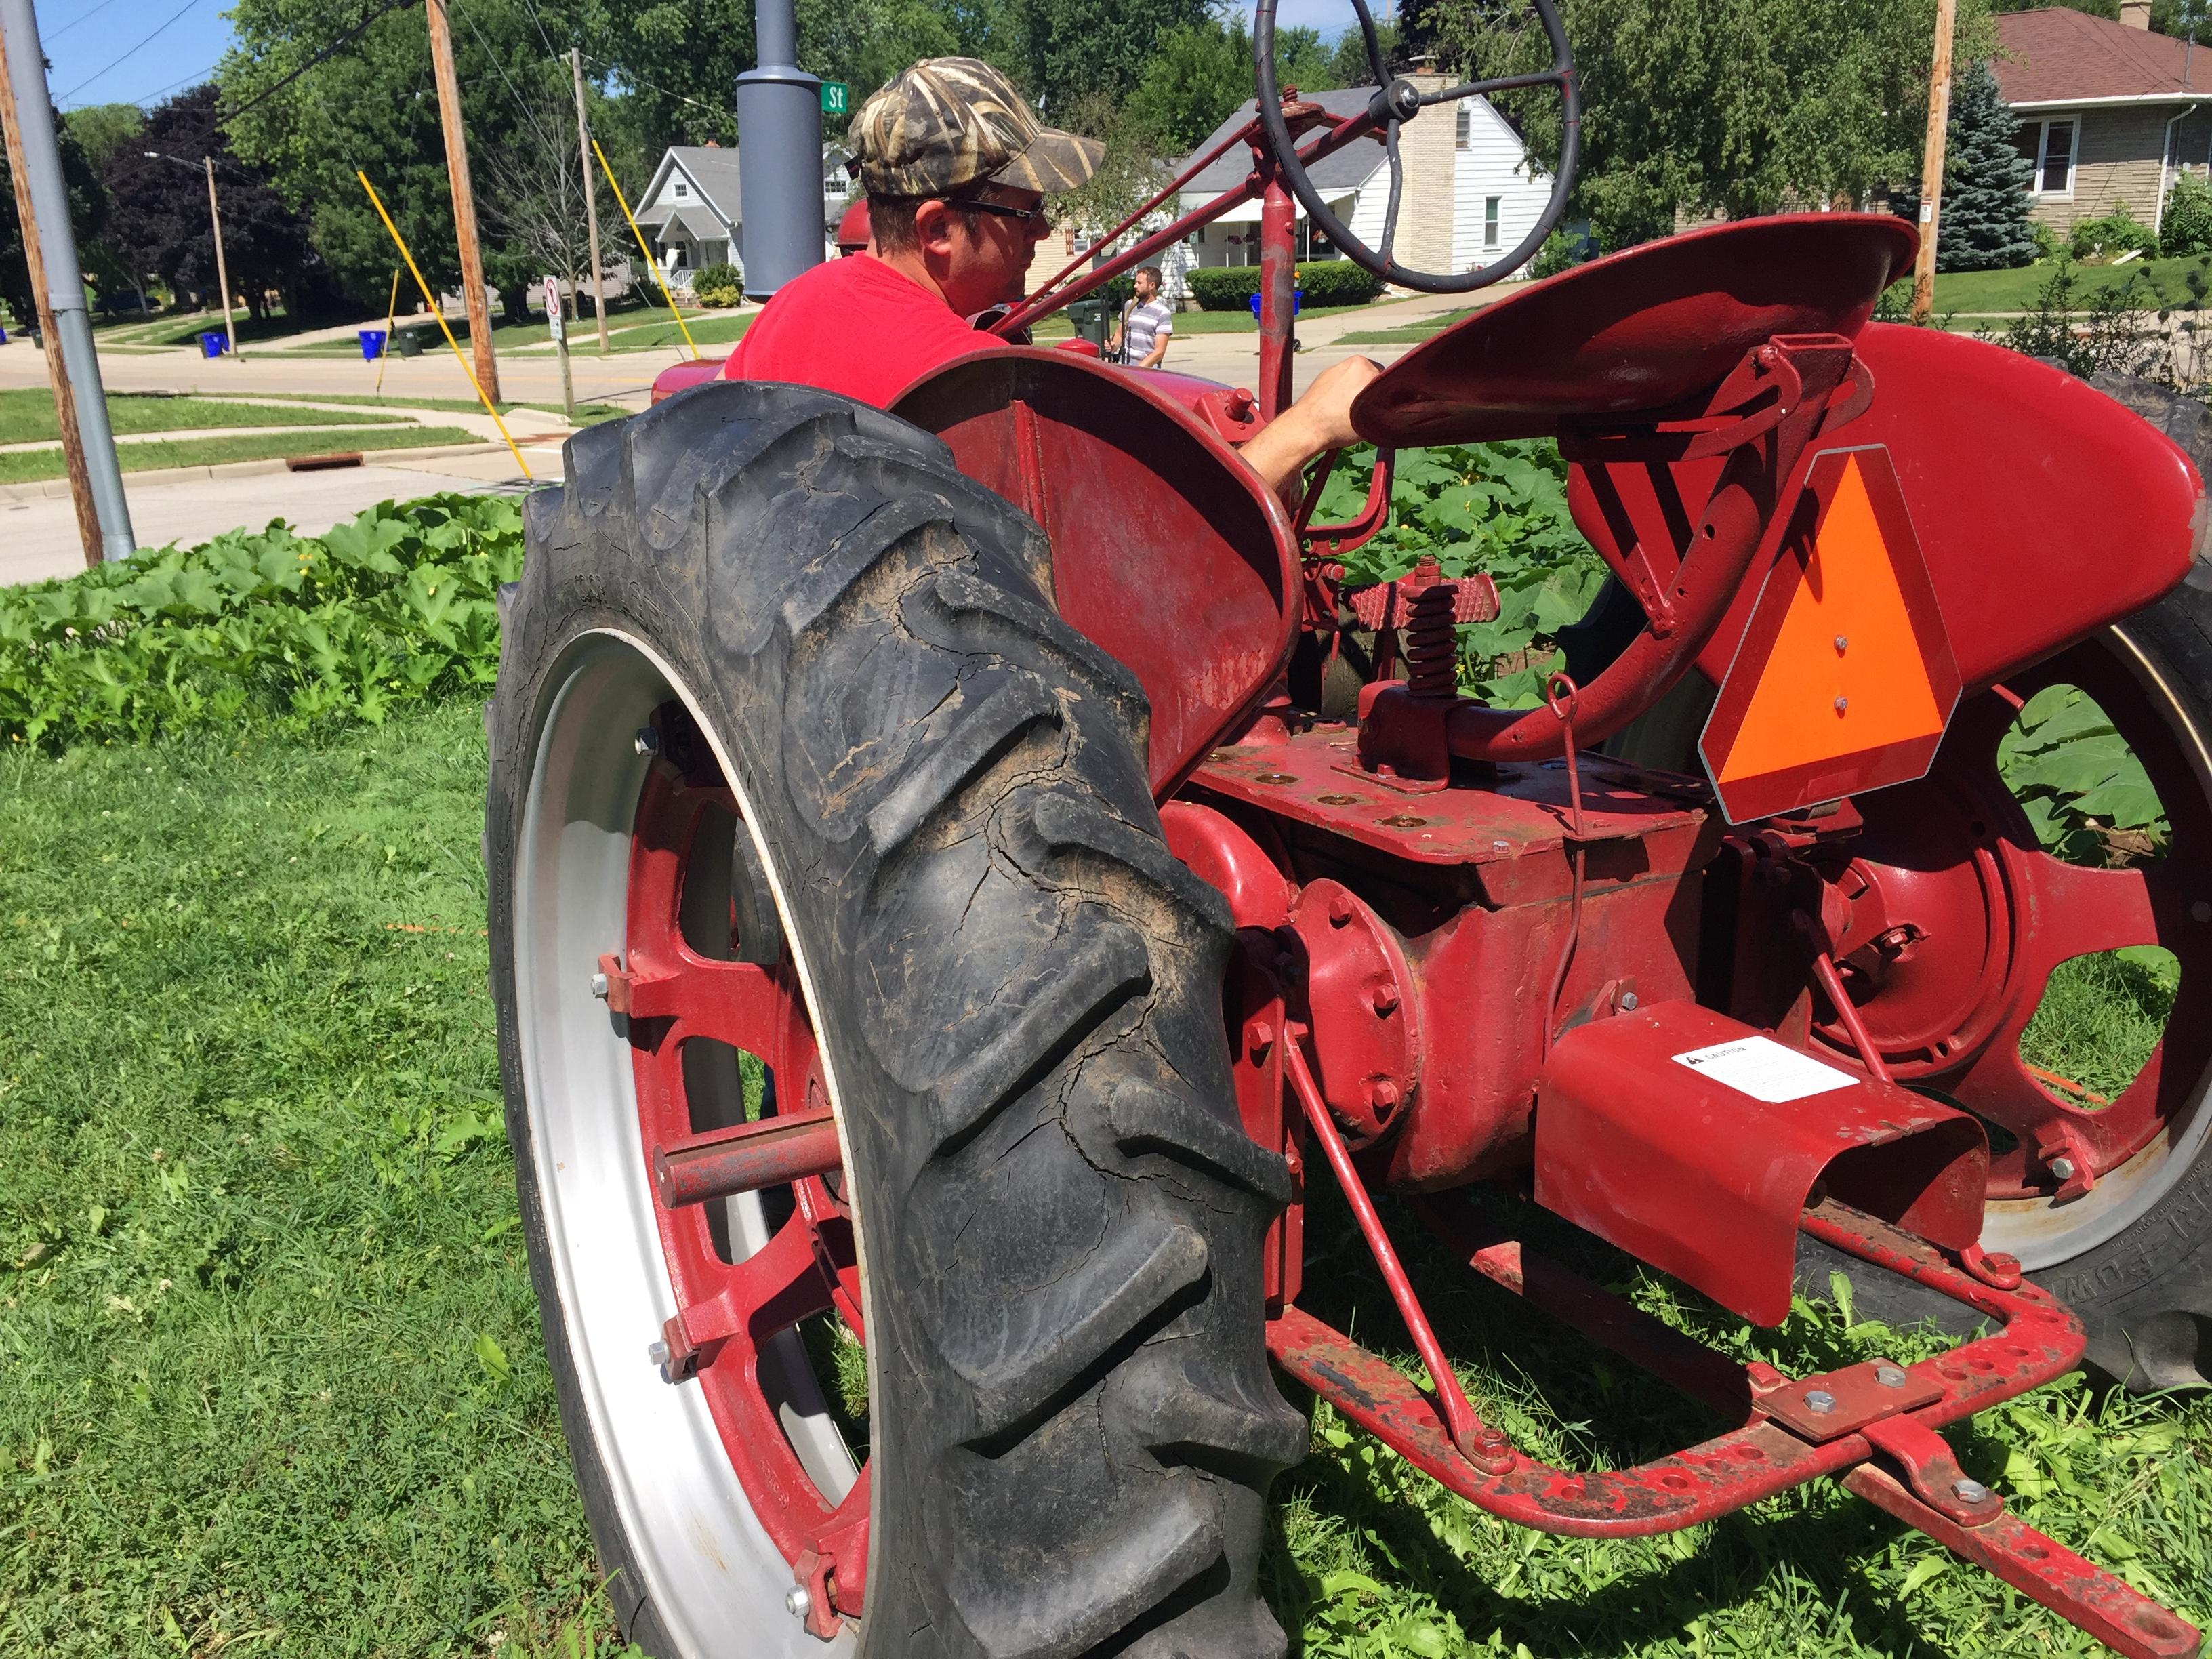 According to the City of Kaukauna, the tractor is a violation of city code. August 7, 2017 (WLUK/Pafoua Yang)